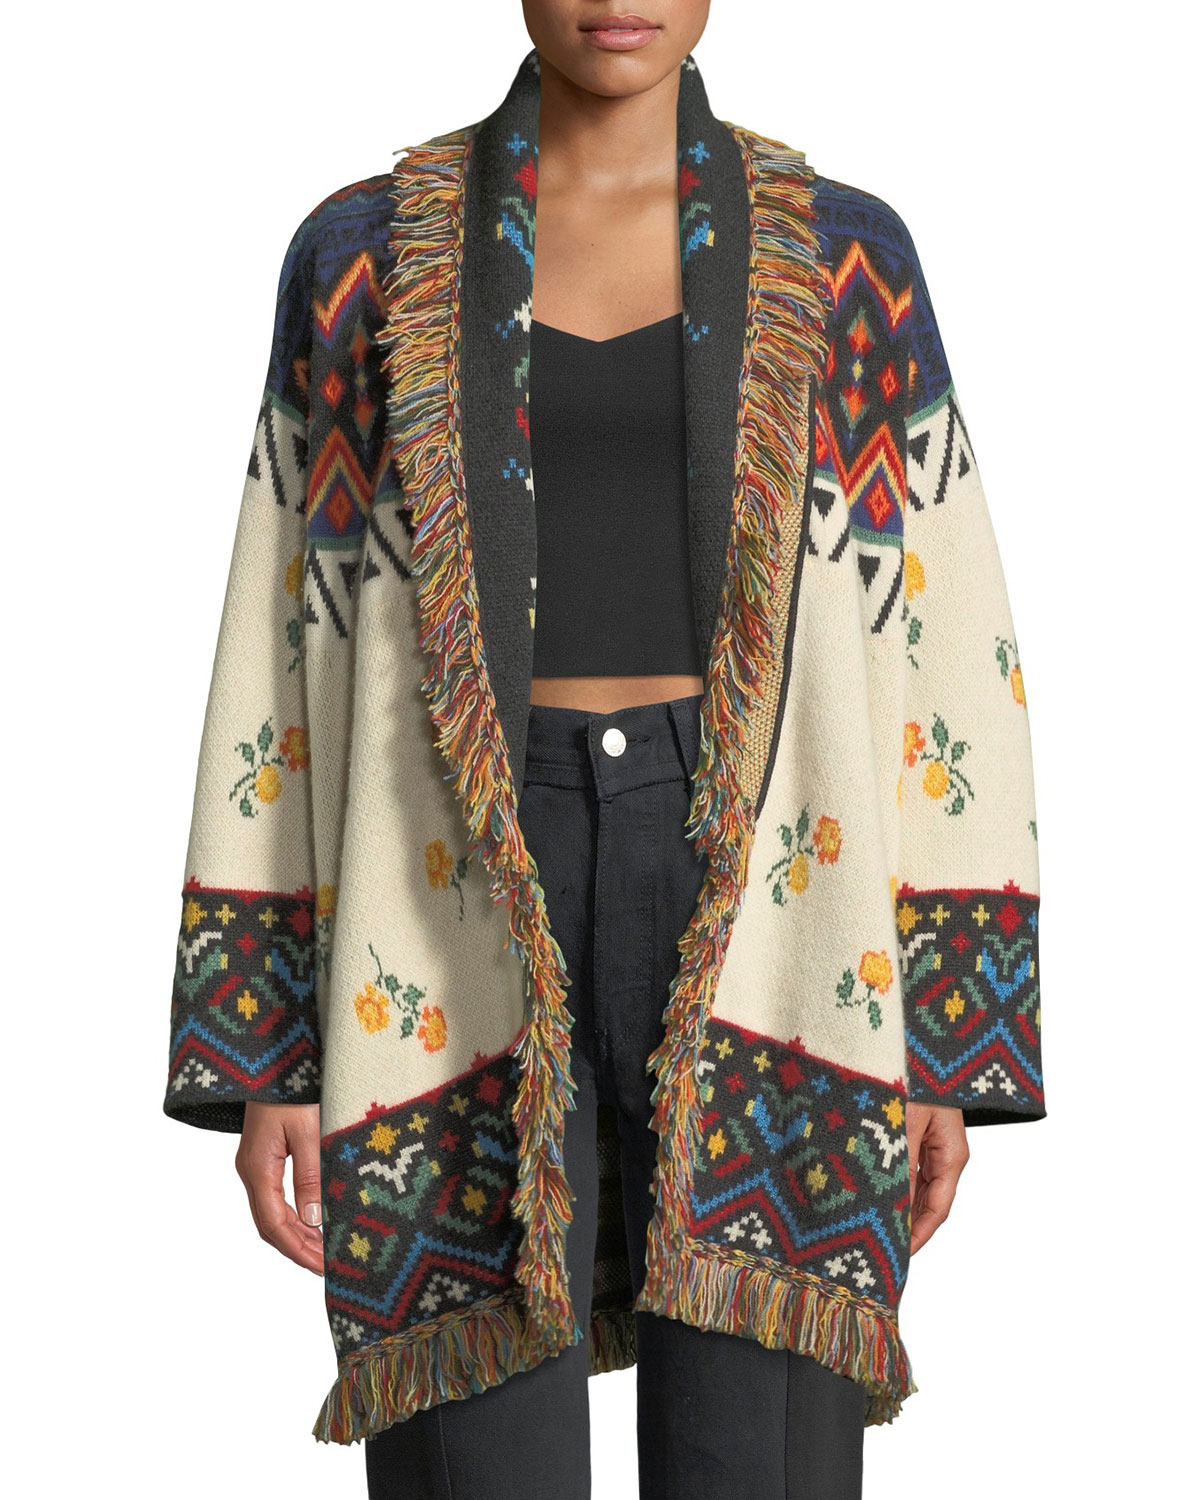 Greenland Self-Belt Floral-Intarsia Cashmere Cardigan W/ Fringe in White